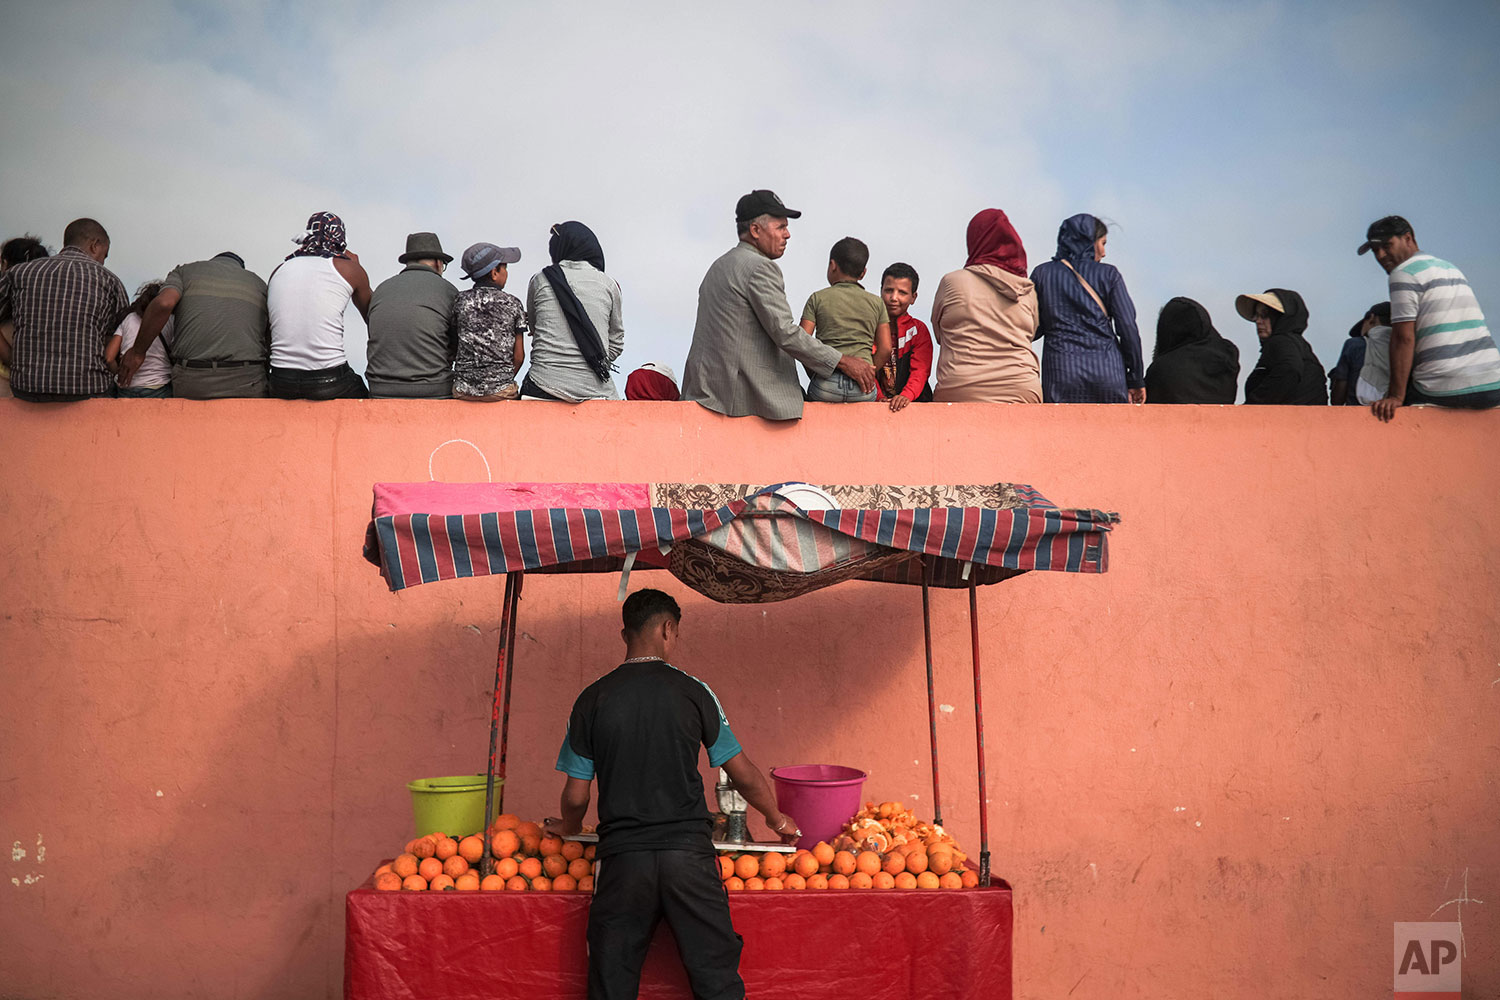 In this Thursday, July 25, 2019 photo, a vendor sells orange juice as people sit on a fence to watch a horsemanship show known as Fantasia or Tabourida, in the coastal town of El Jadida, Morocco. (AP Photo/Mosa'ab Elshamy)